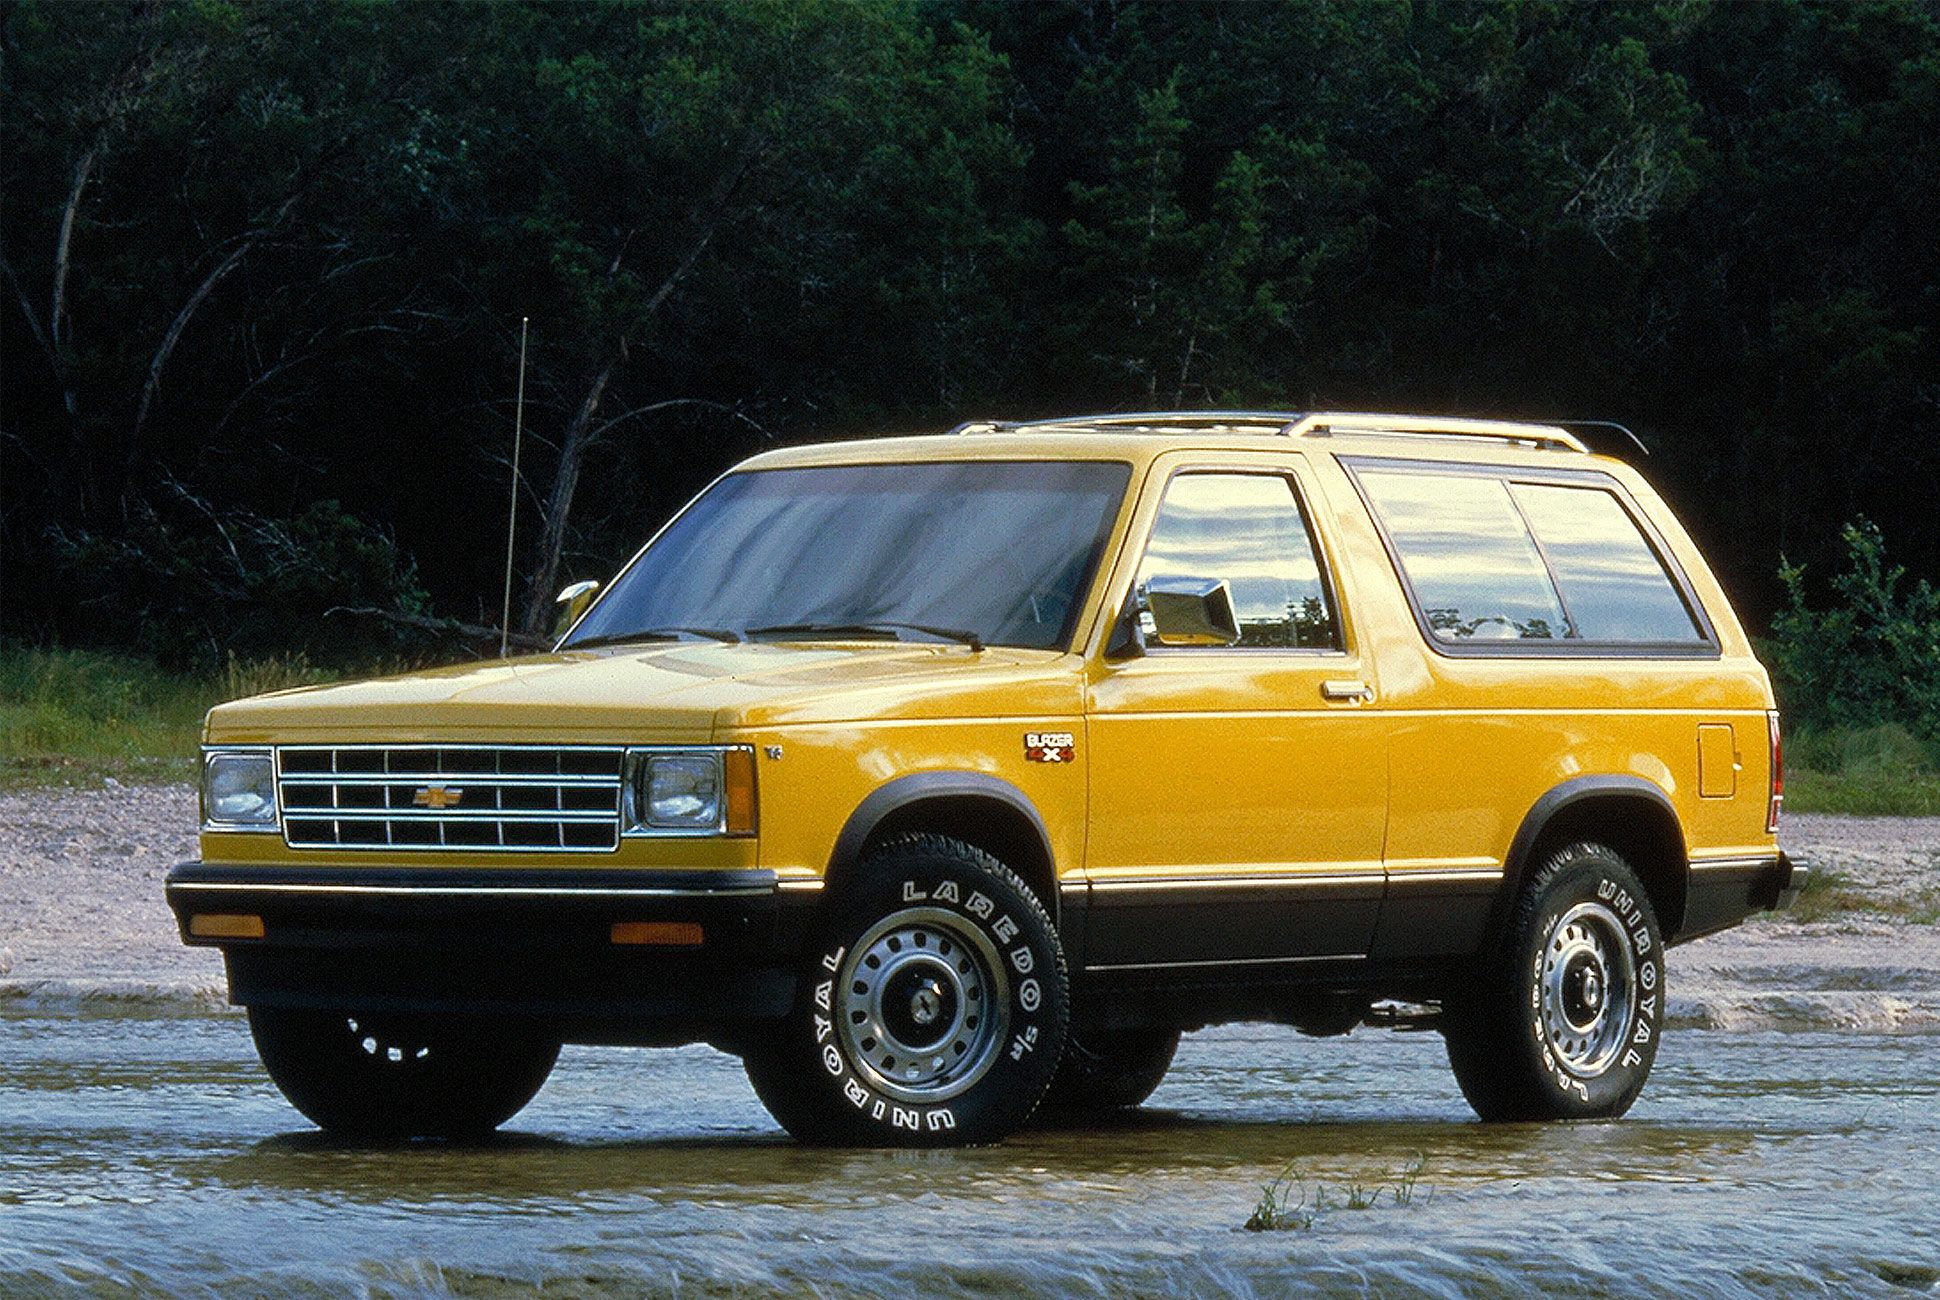 Rumor The Chevy Blazer Will Come Back Before The New Bronco Chevy S10 Blazer New Bronco